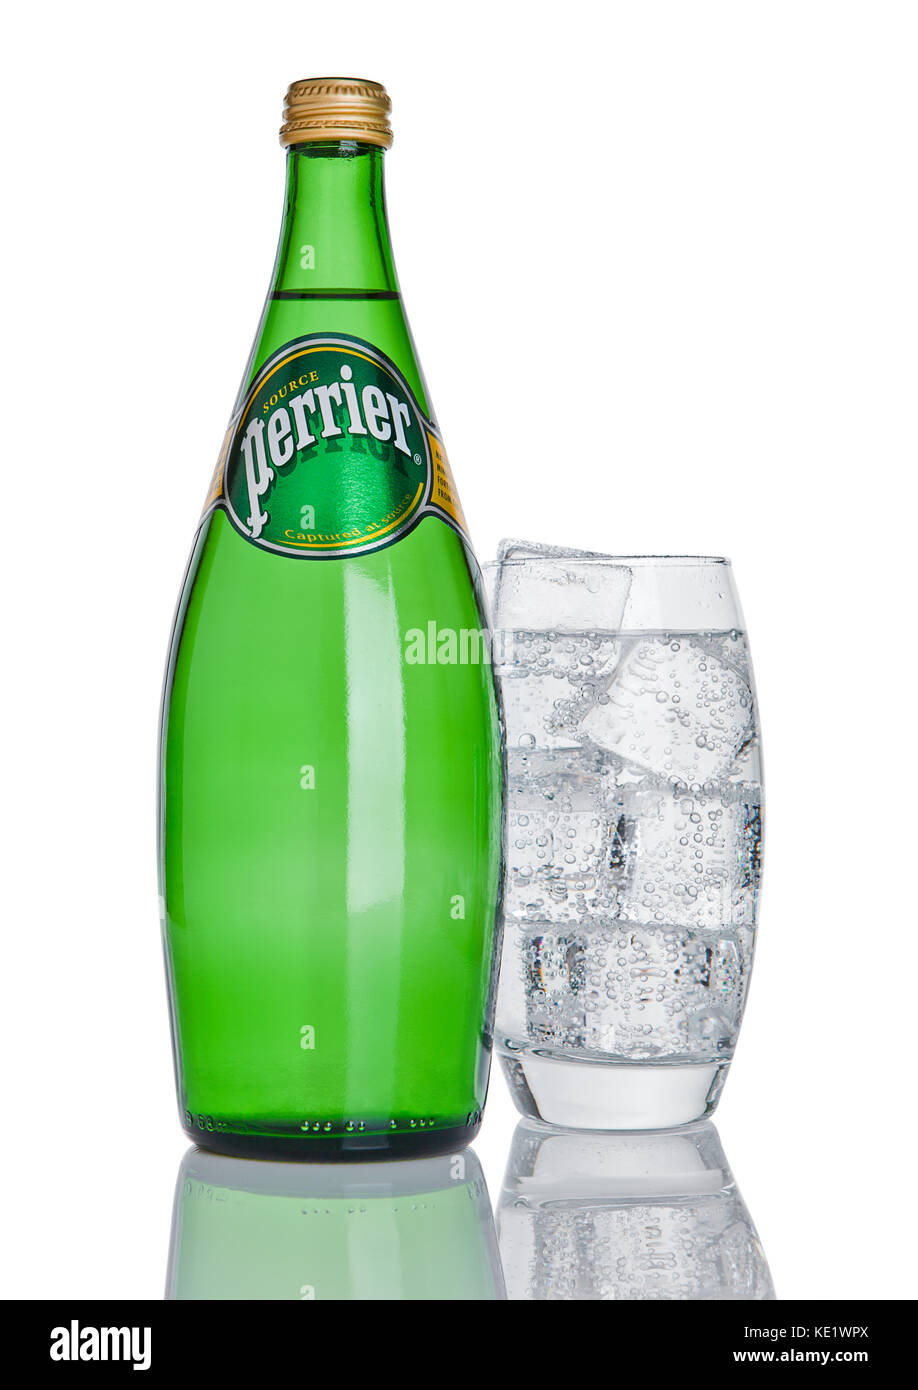 Perrier water immagini perrier water fotos stock alamy for Bottiglia in francese